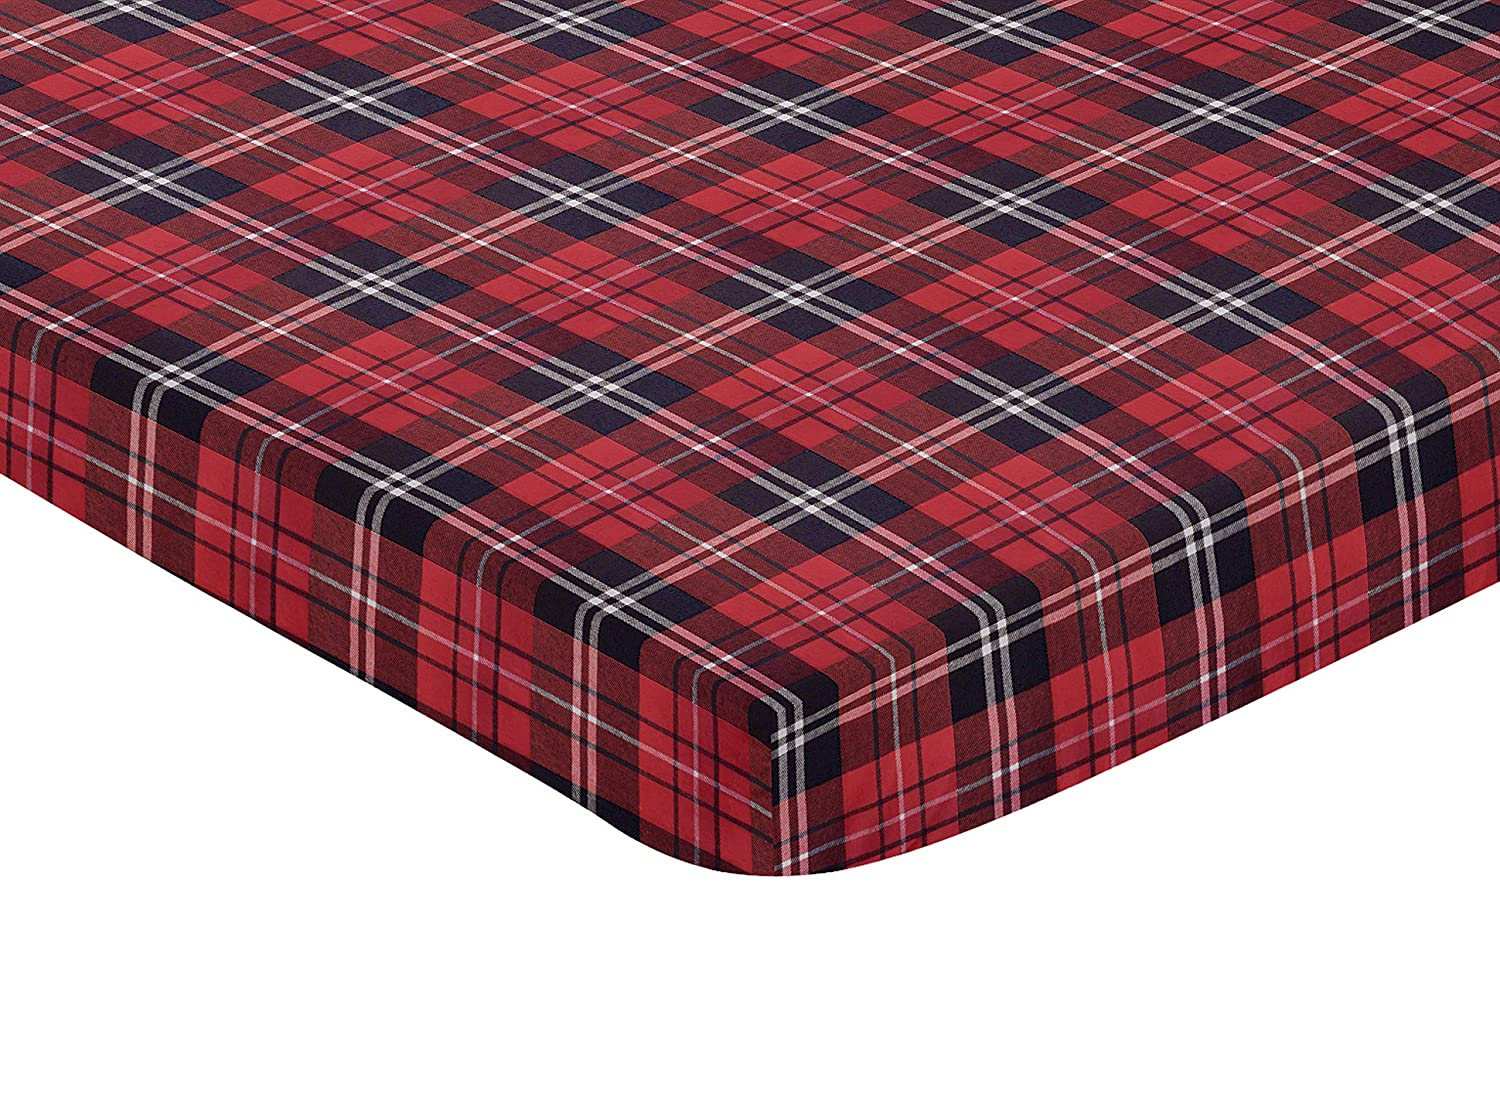 Amazon Com Sweet Jojo Designs Red And Black Woodland Plaid Flannel Baby Boy Fitted Mini Portable Crib Sheet For Rustic Patch Collection For Mini Crib Or Pack And Play Only Baby